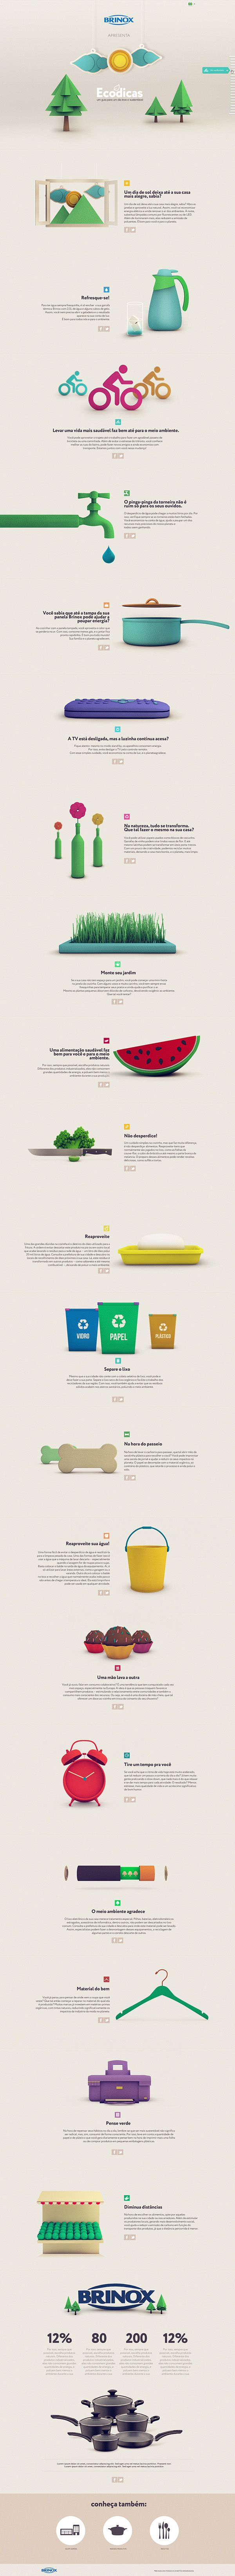 Eco Dicas - Brinox on Behance